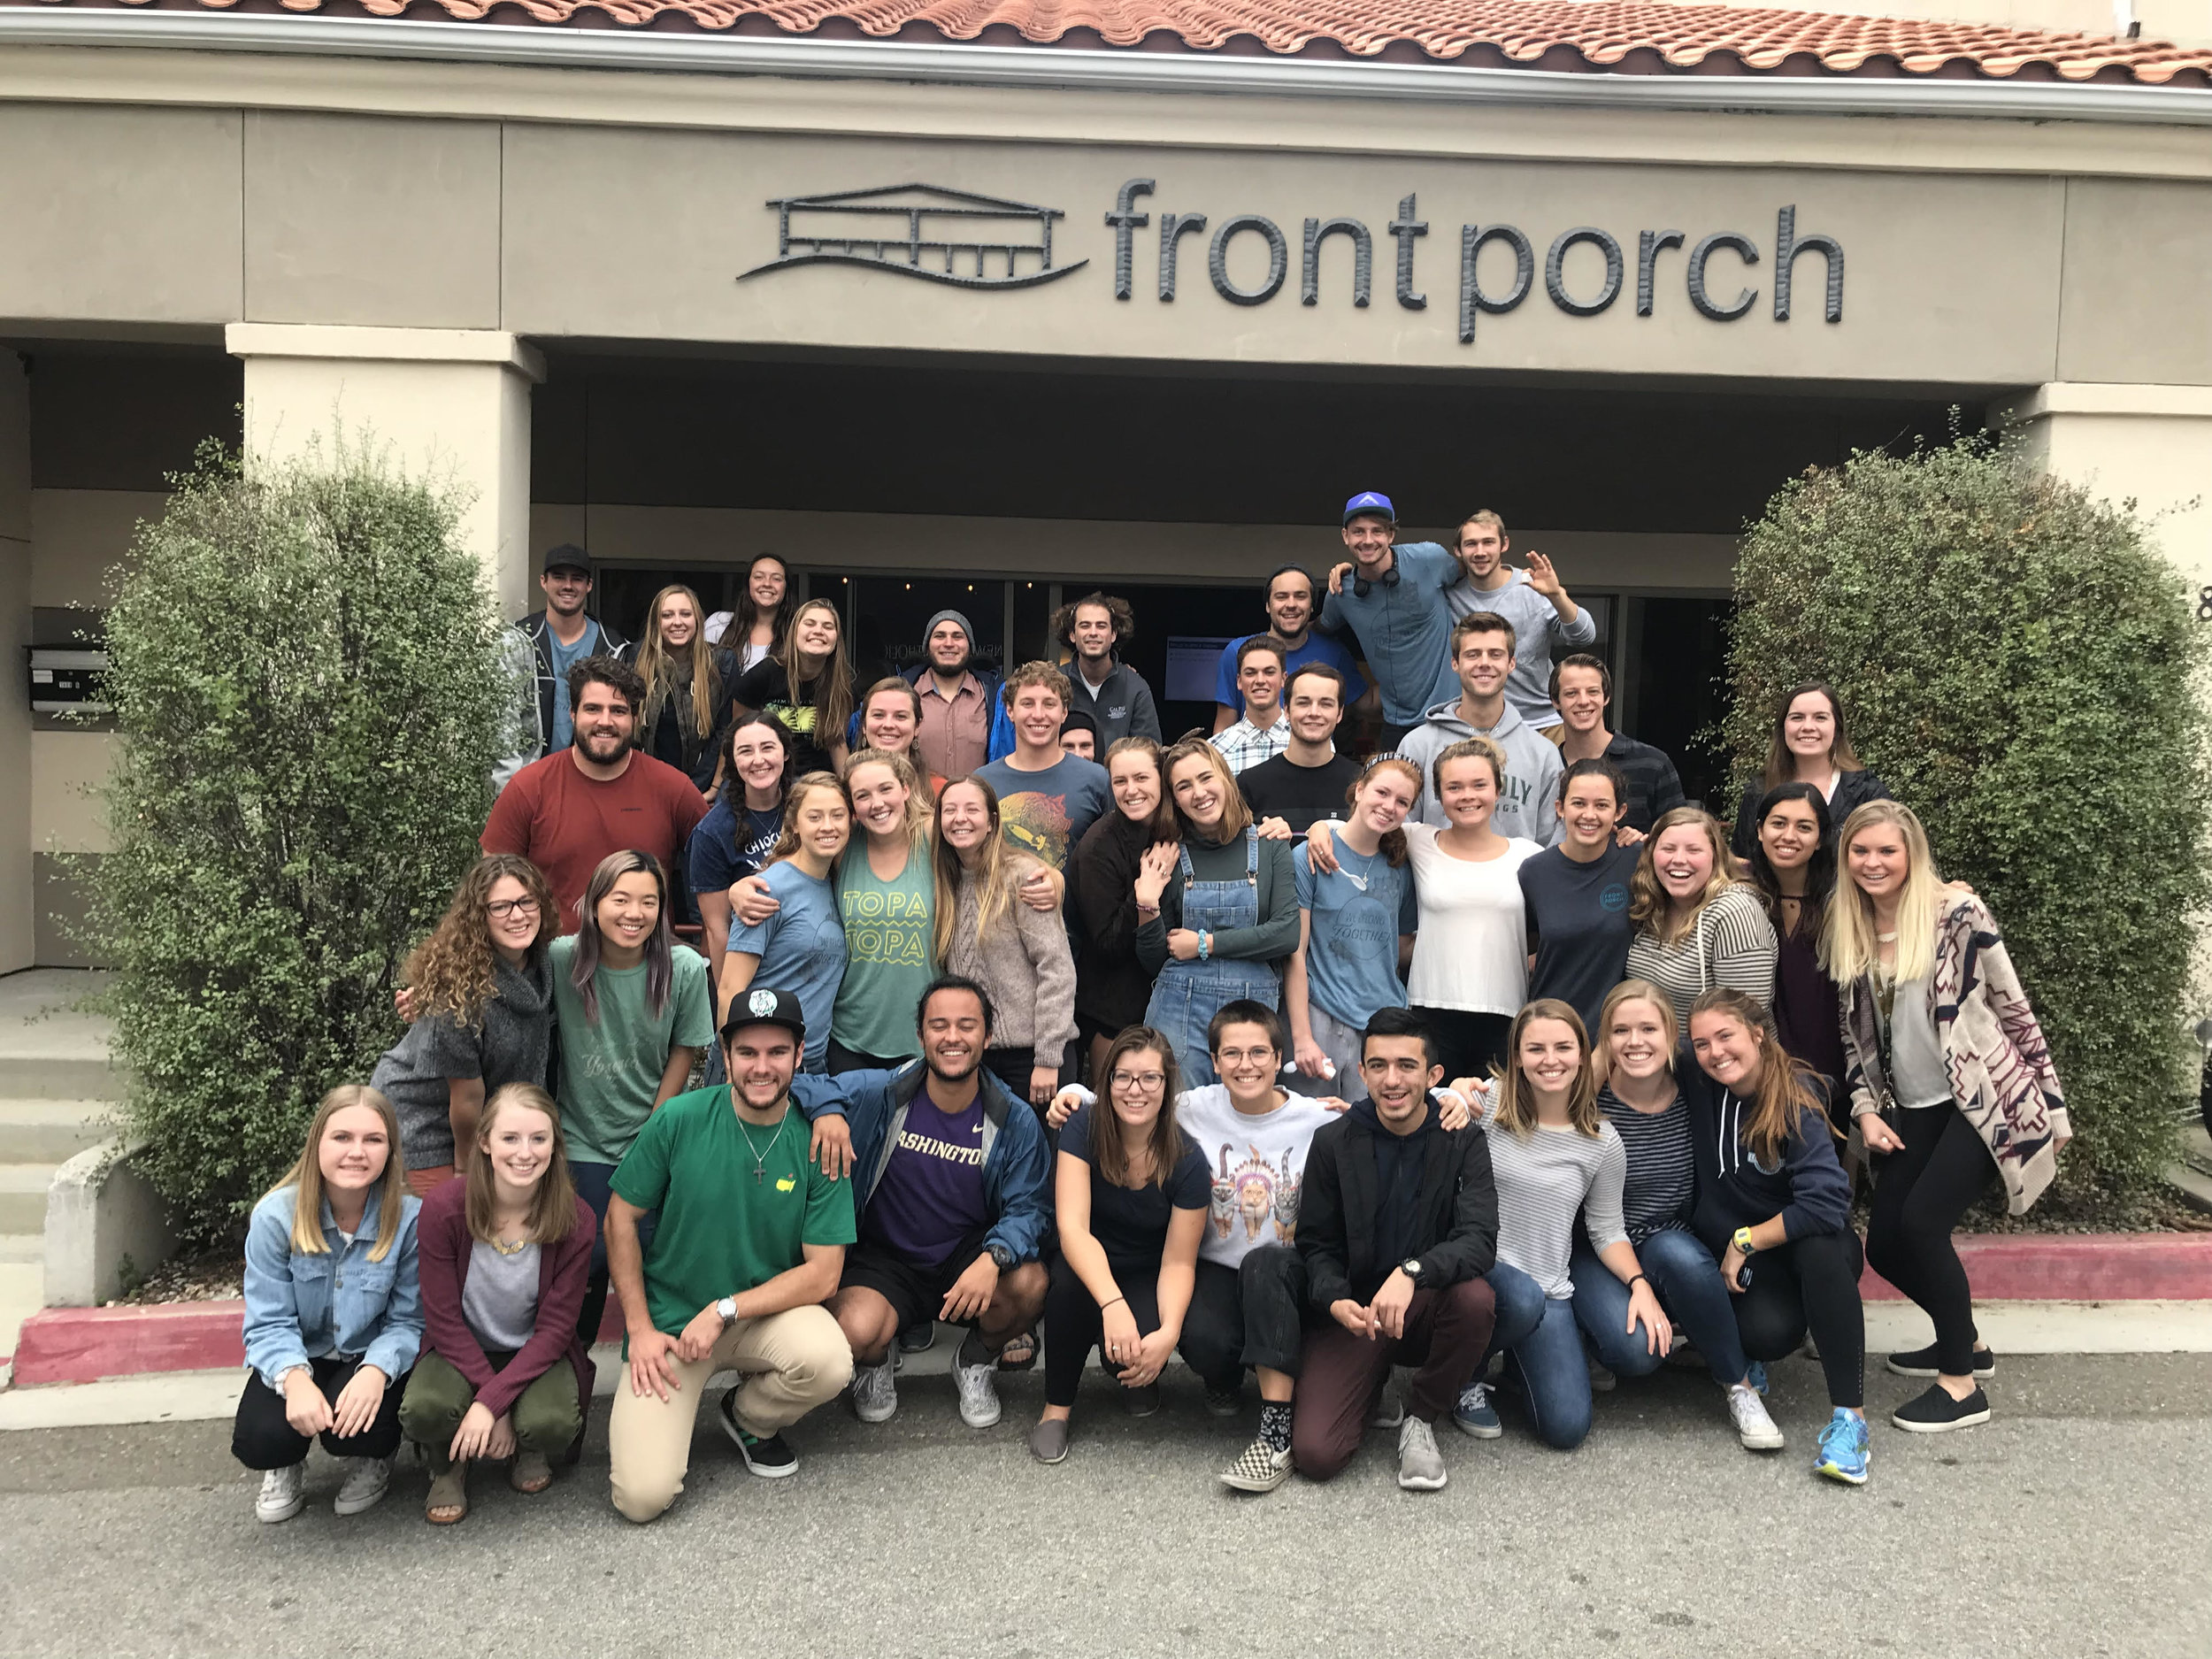 Fall 2017 Front Porch volunteers  -  T  he passion these students have for Front Porch is evident in the love and time they give to their fellow students. Front Porch would not exist without our volunteers and supporters.